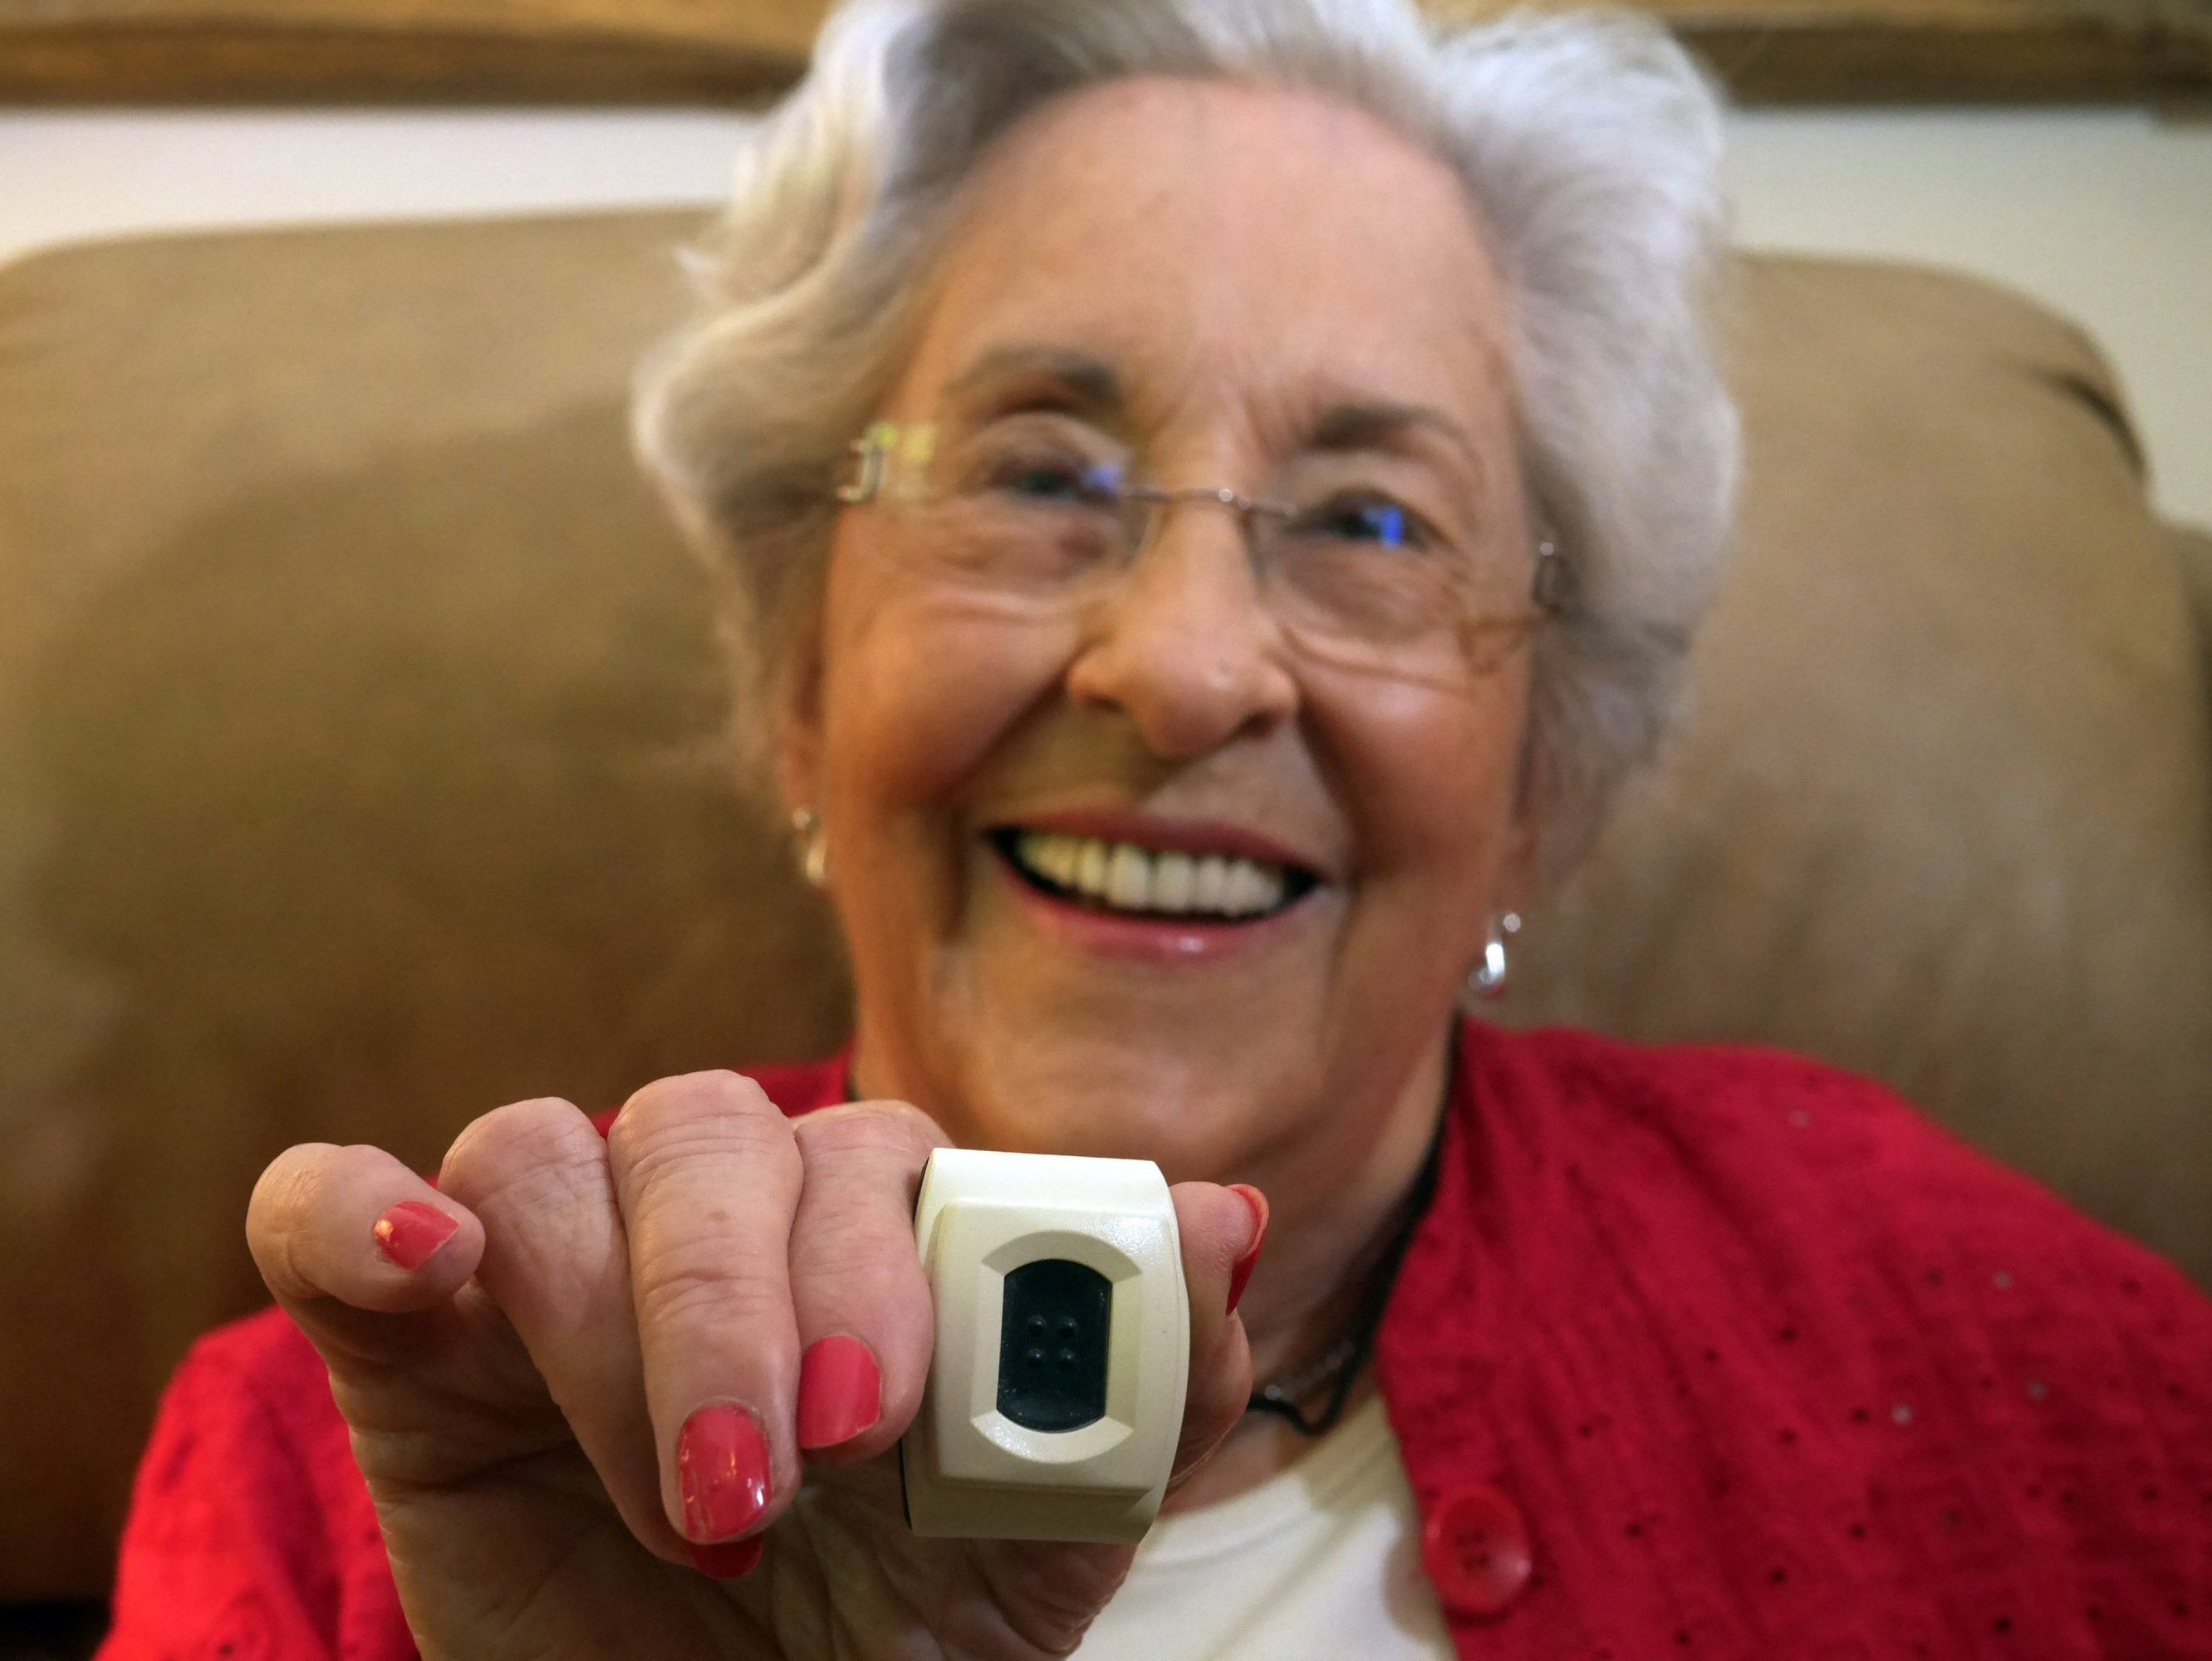 Betty Lewis, 90, a resident at The Plaza at Edgemere in North Dallas, wears the Phillips Life Line, a pendent alert system that informs Edgemere staff when a resident has fallen. The system also gives her general location.